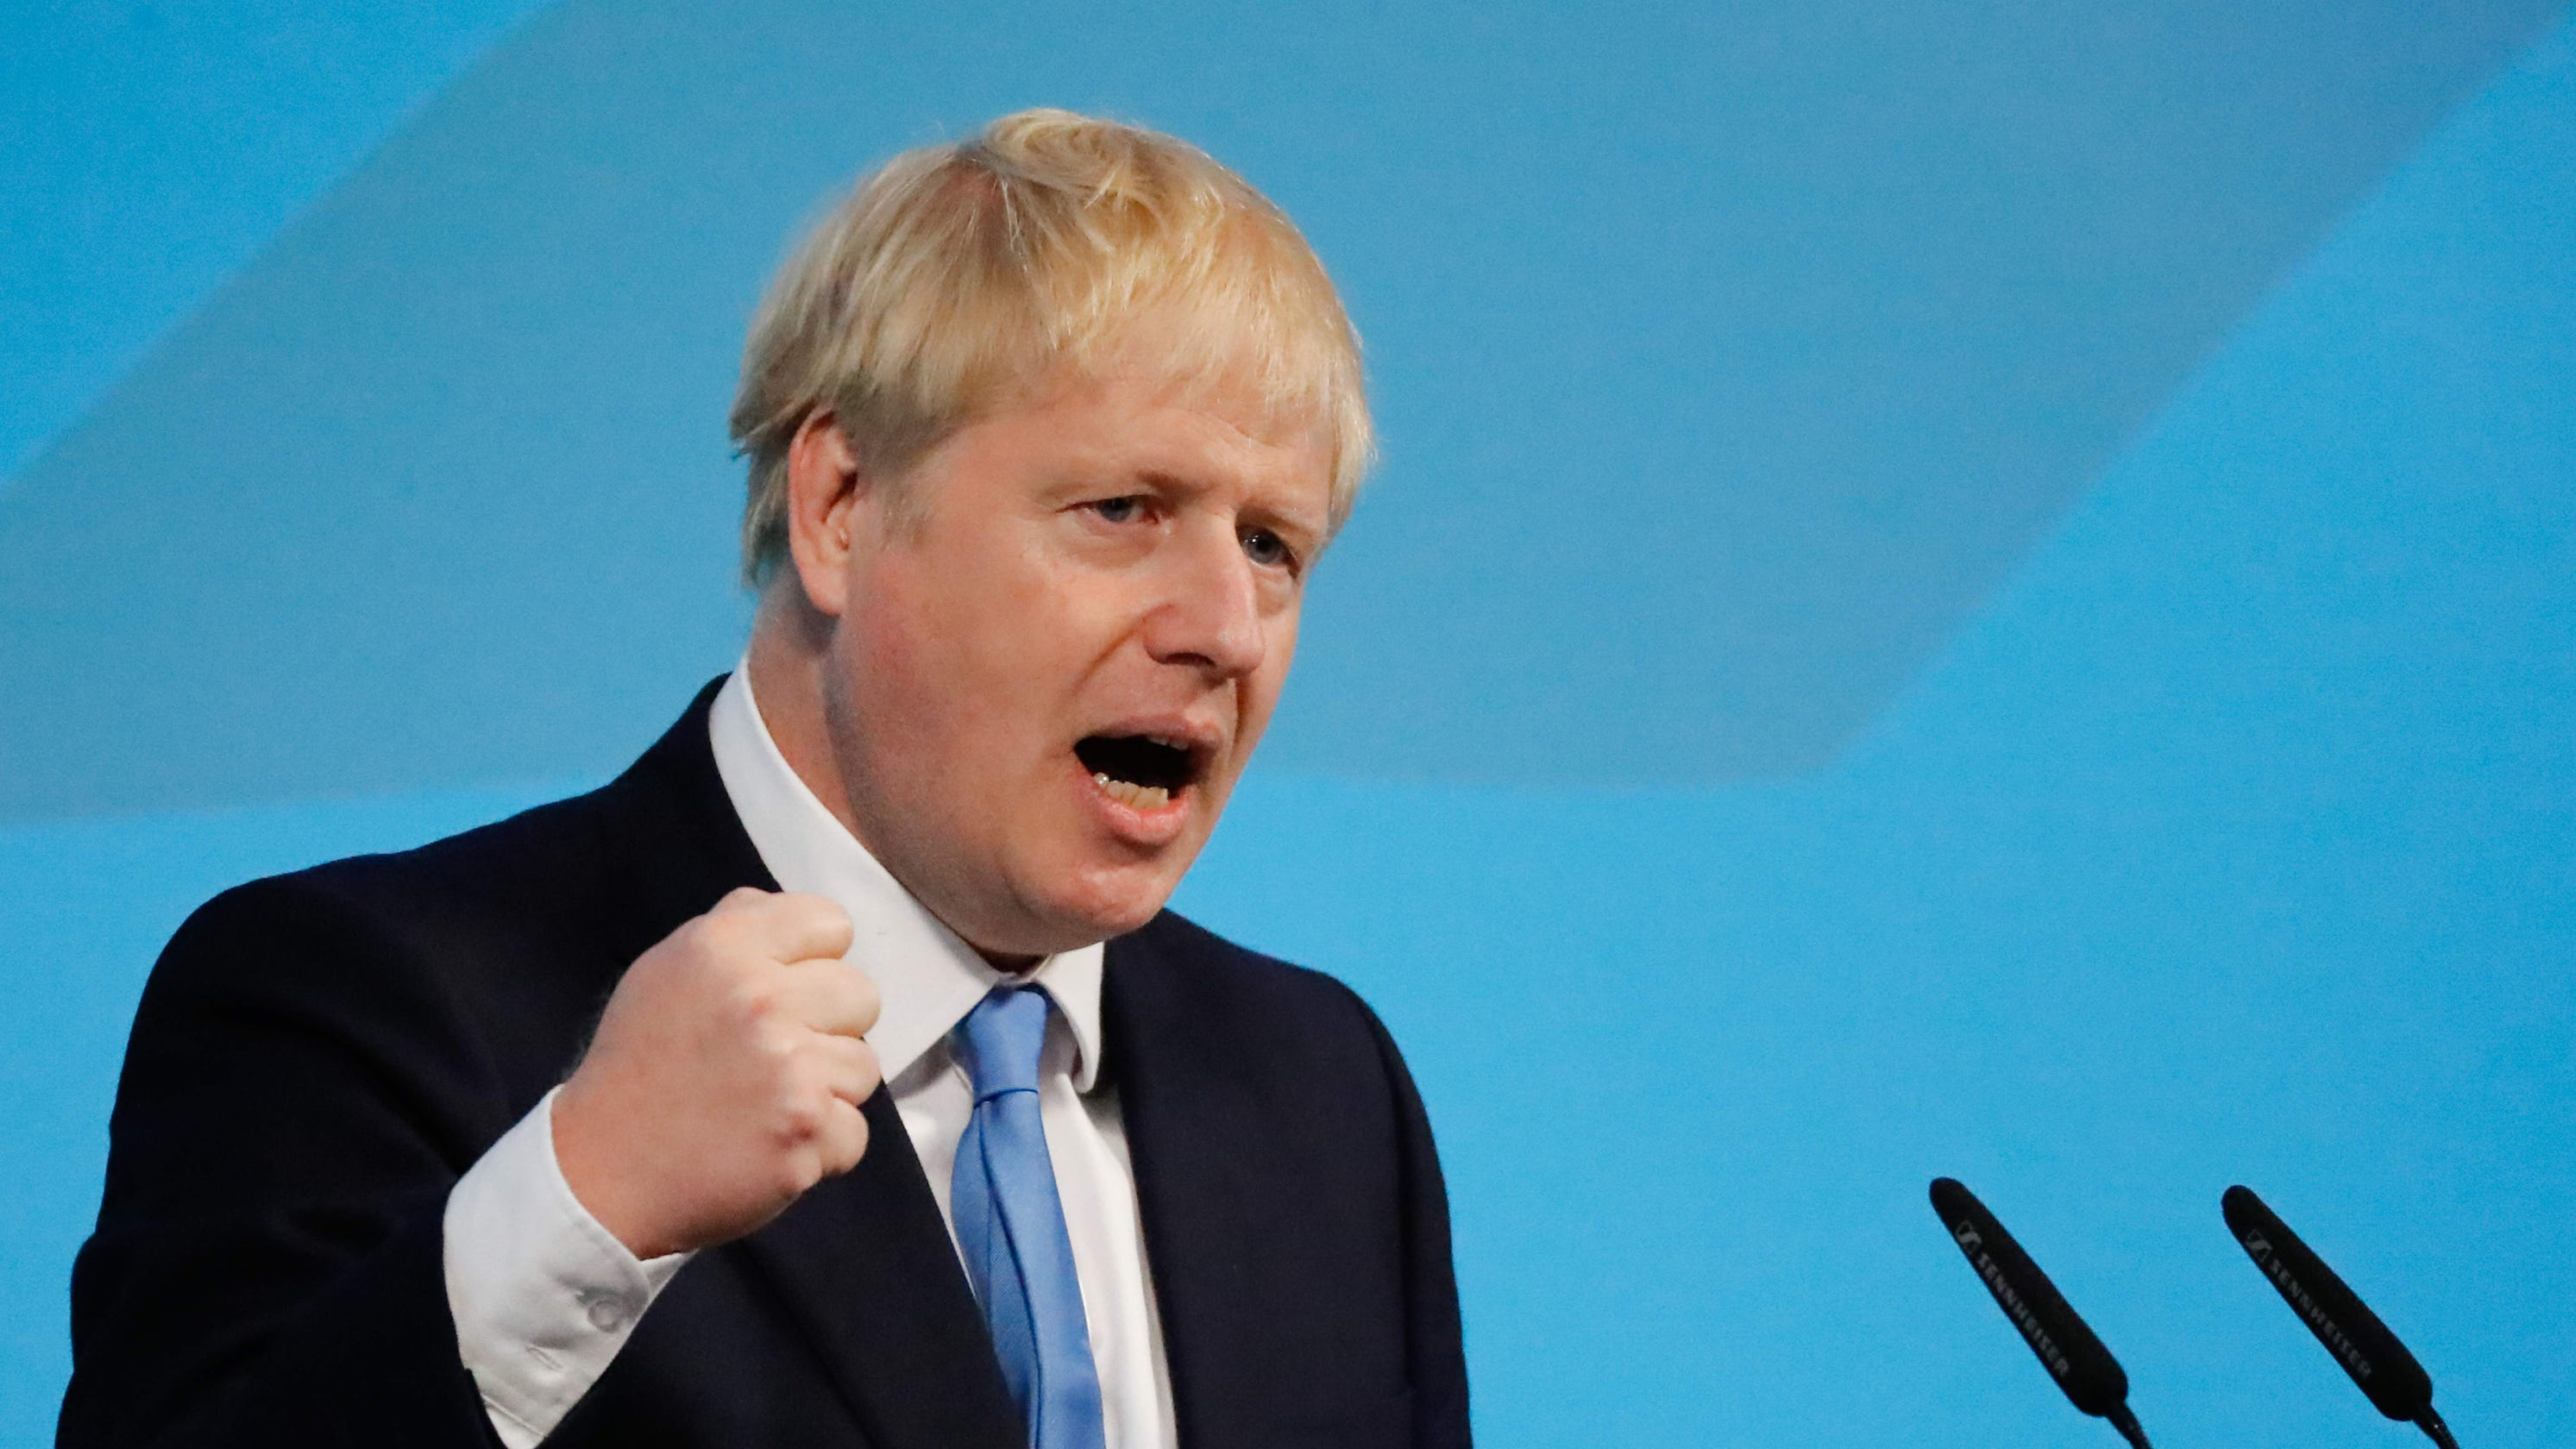 Boris Johnson wins contest to be United Kingdom's new prime minister